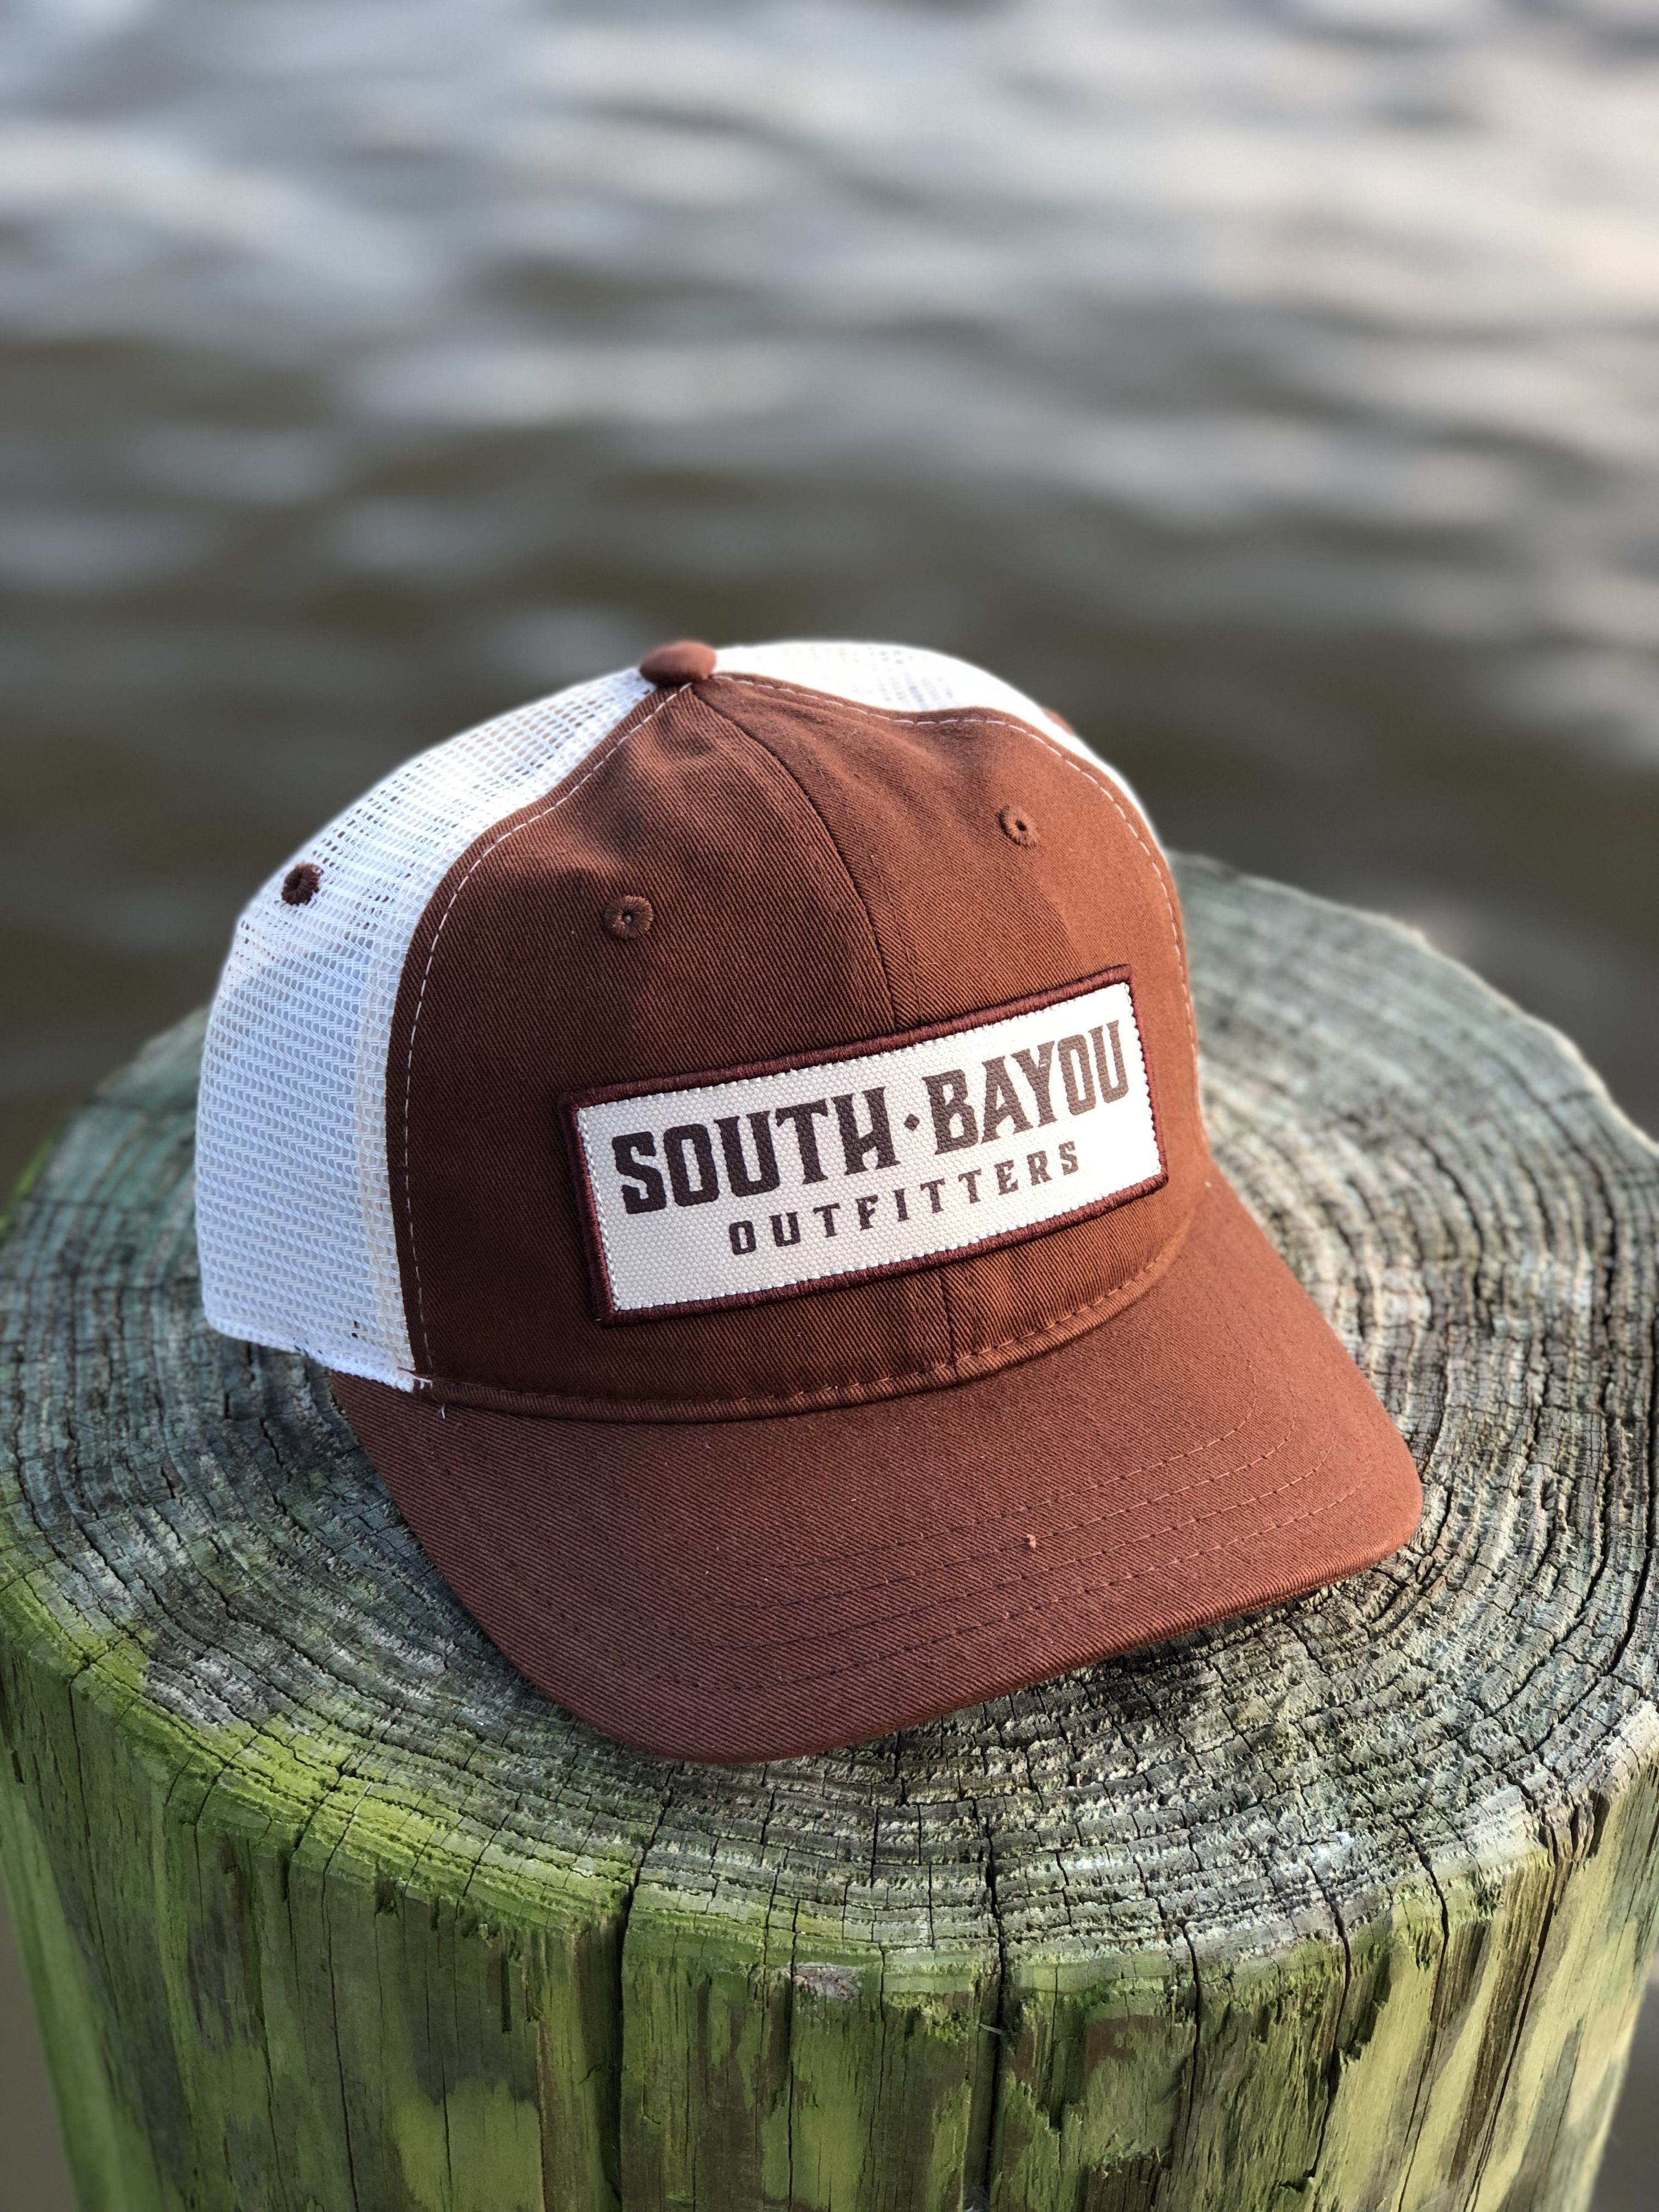 f81544ca719 Southbayou hats headwear SnapBack outdoor southern style duckhunting South  oldsouth boatdock delta Bayou Cajun